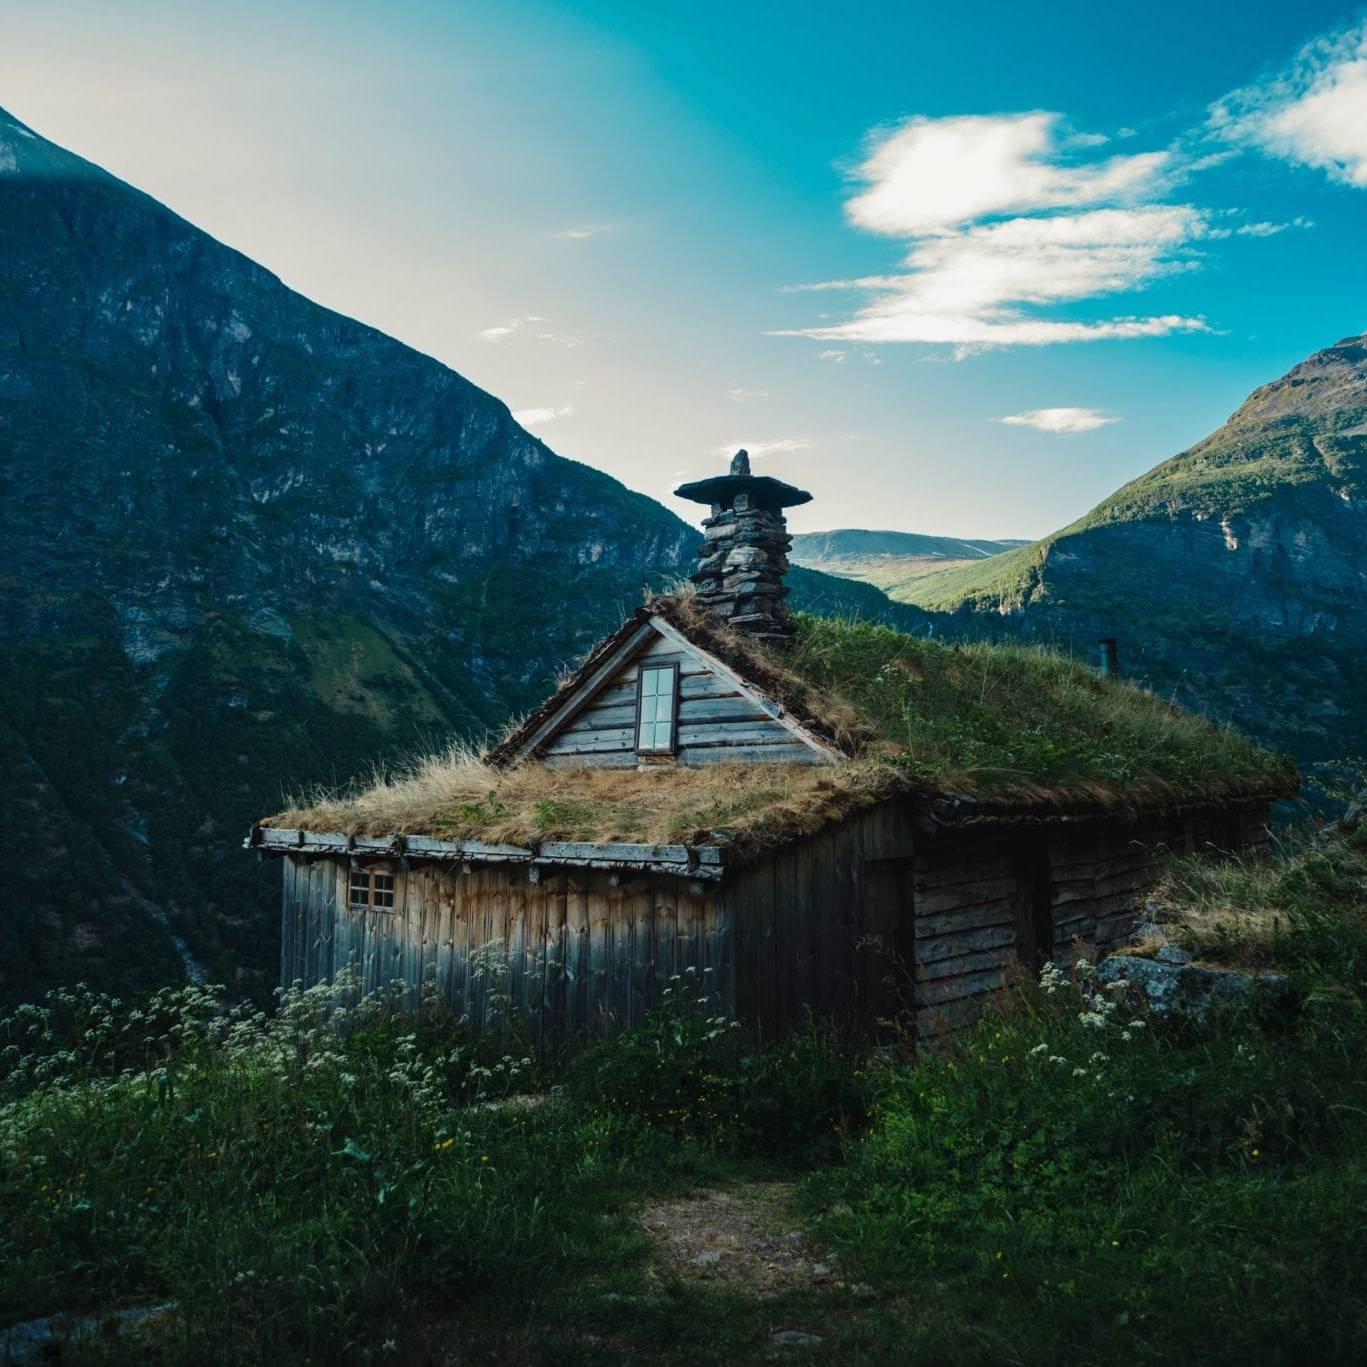 Photo by Torbjørn Sandbakk on Unsplash